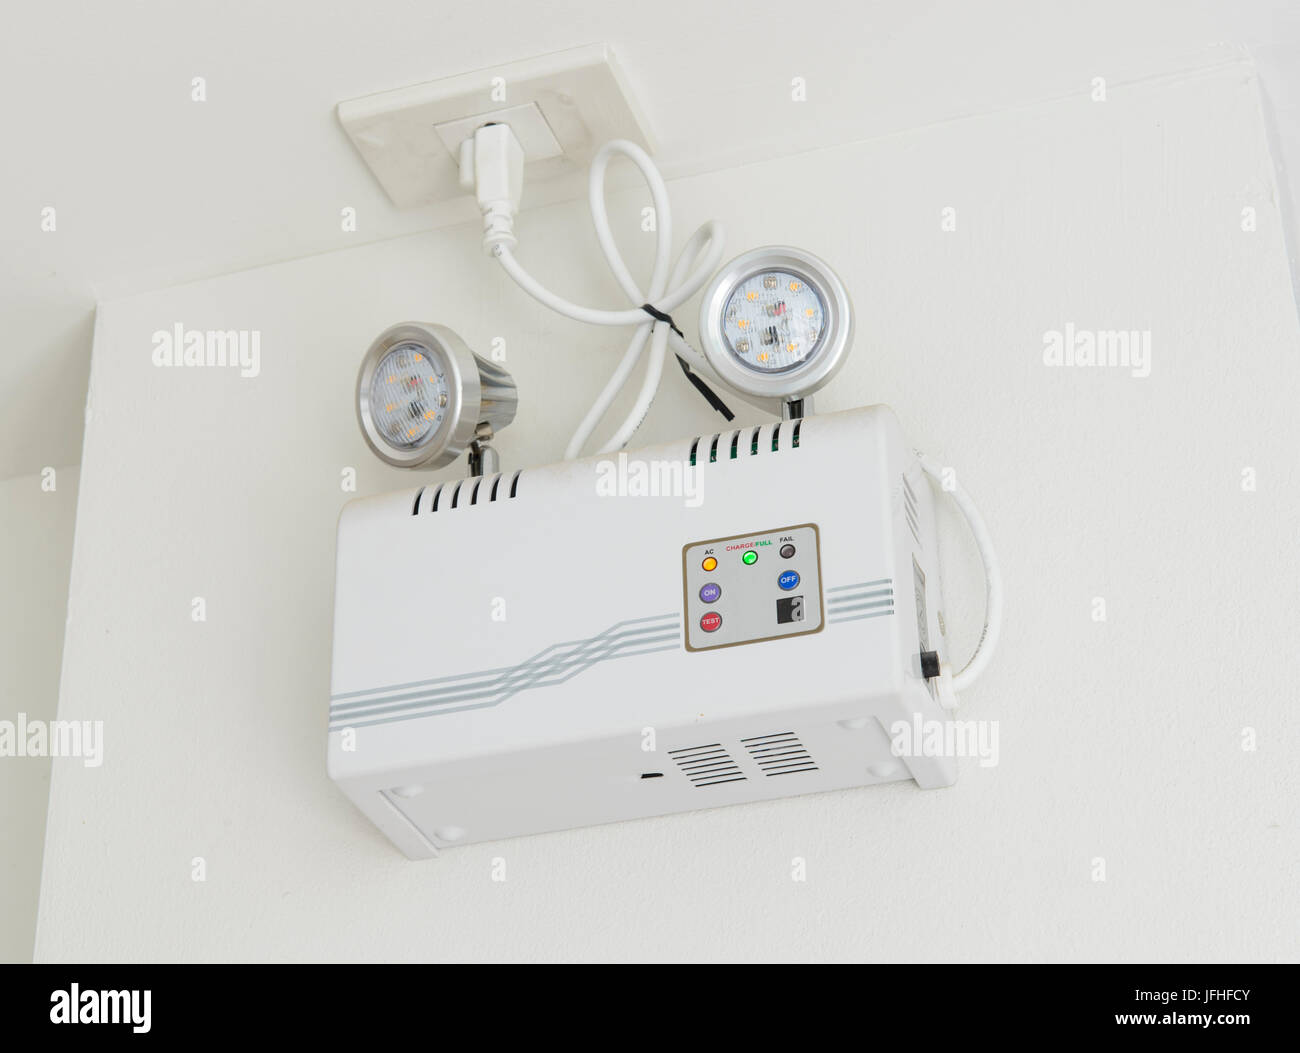 Emergency Electric Lamp Stock Photos Light And Alarm Lighting On The Wall Image